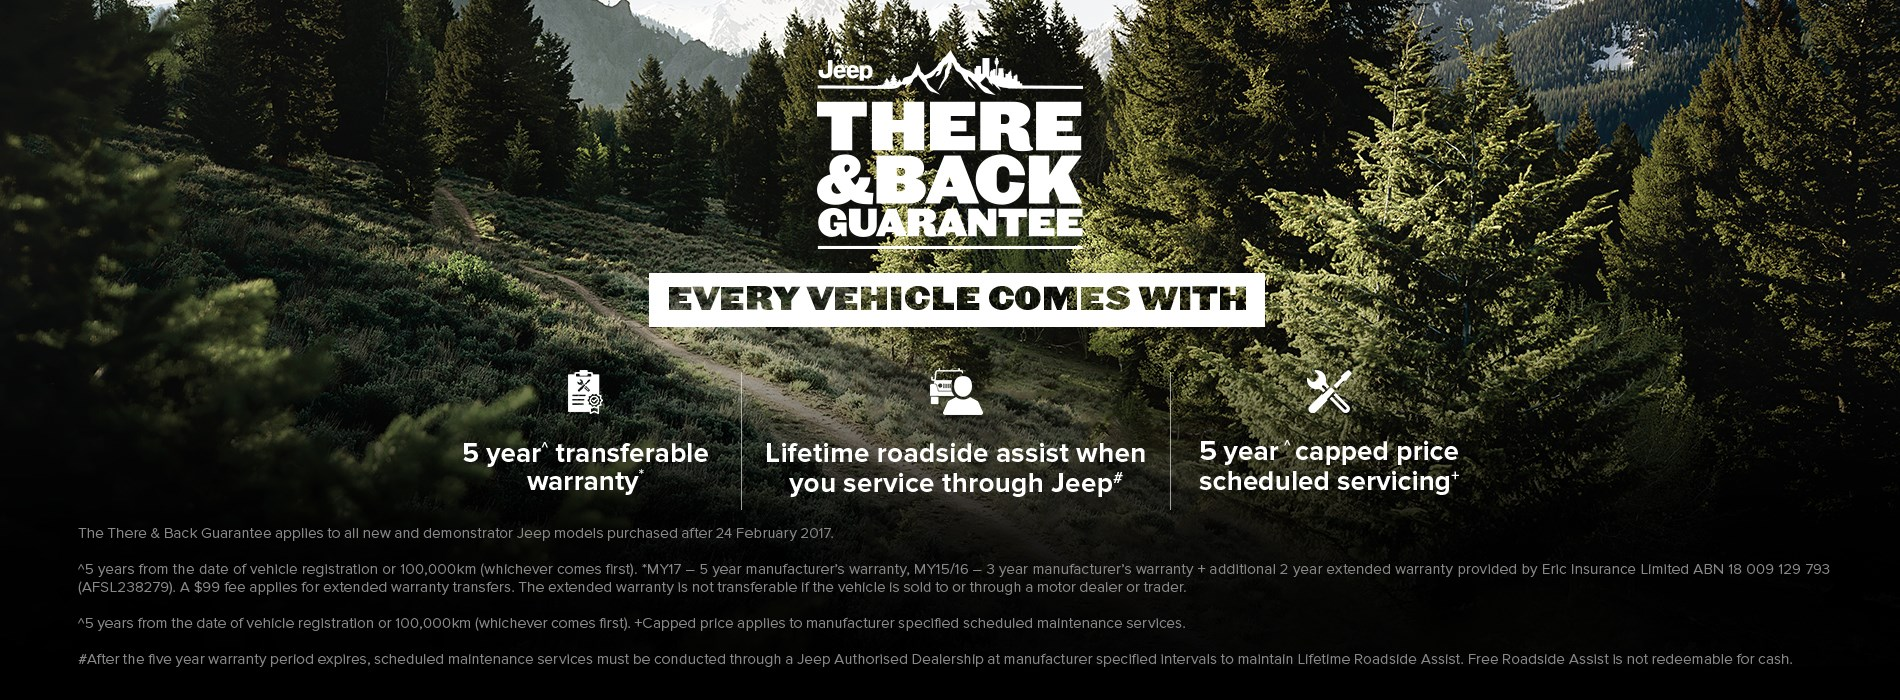 Jeep There & Back Guarantee